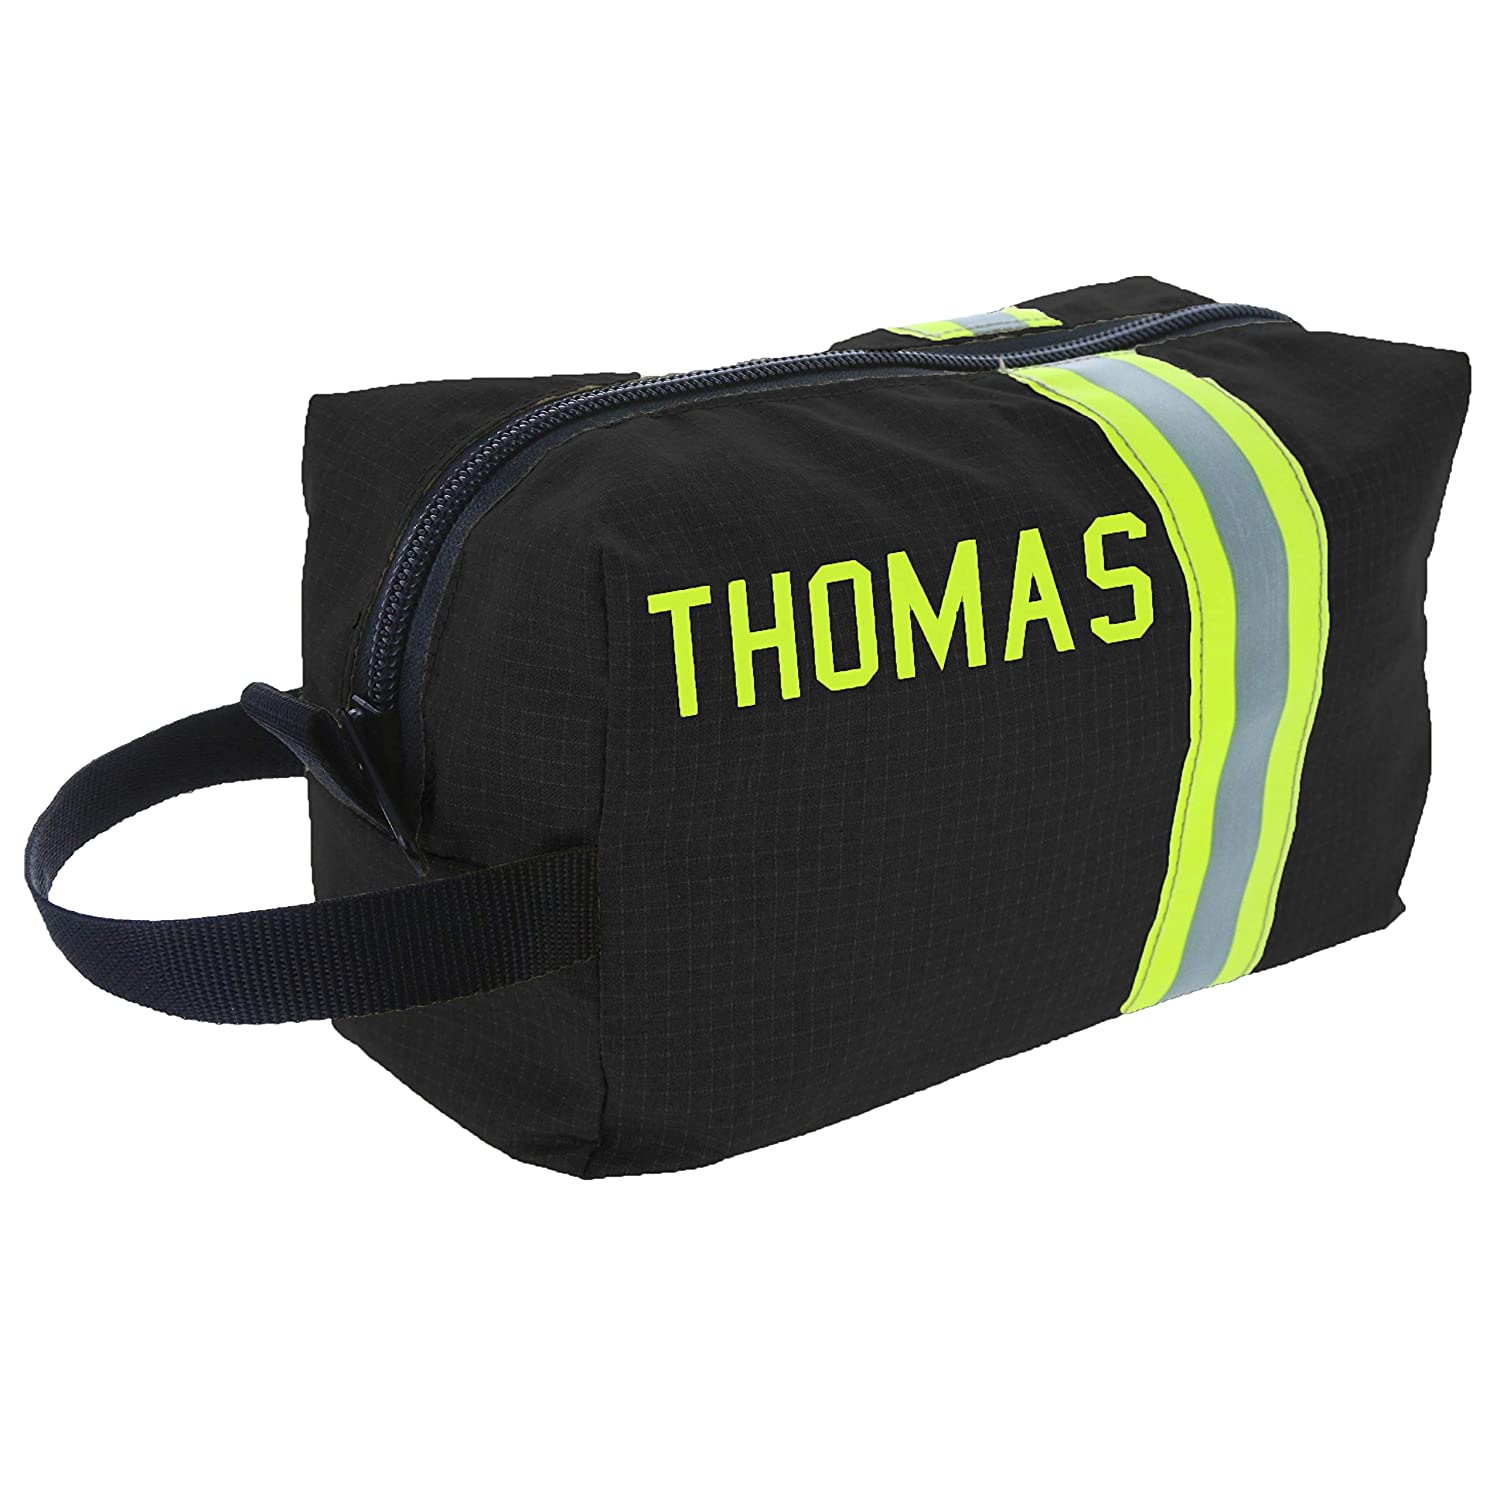 Firefighter Personalized Black Toiletry Bag